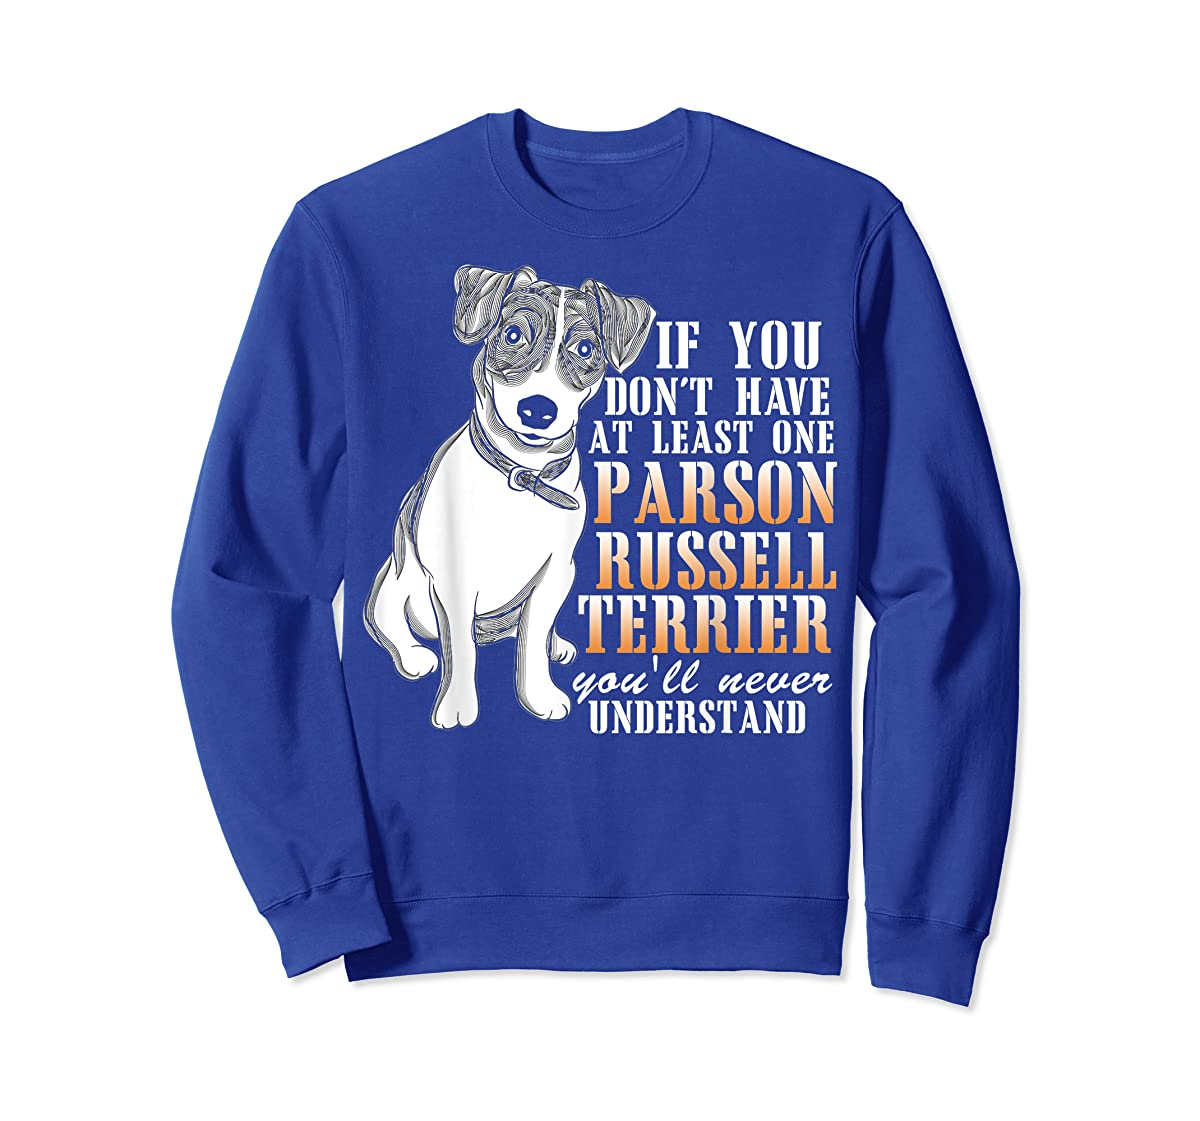 Parson Russell Terrier T Shirt, I Love My Dog T Shirt-Sweatshirt-Royal